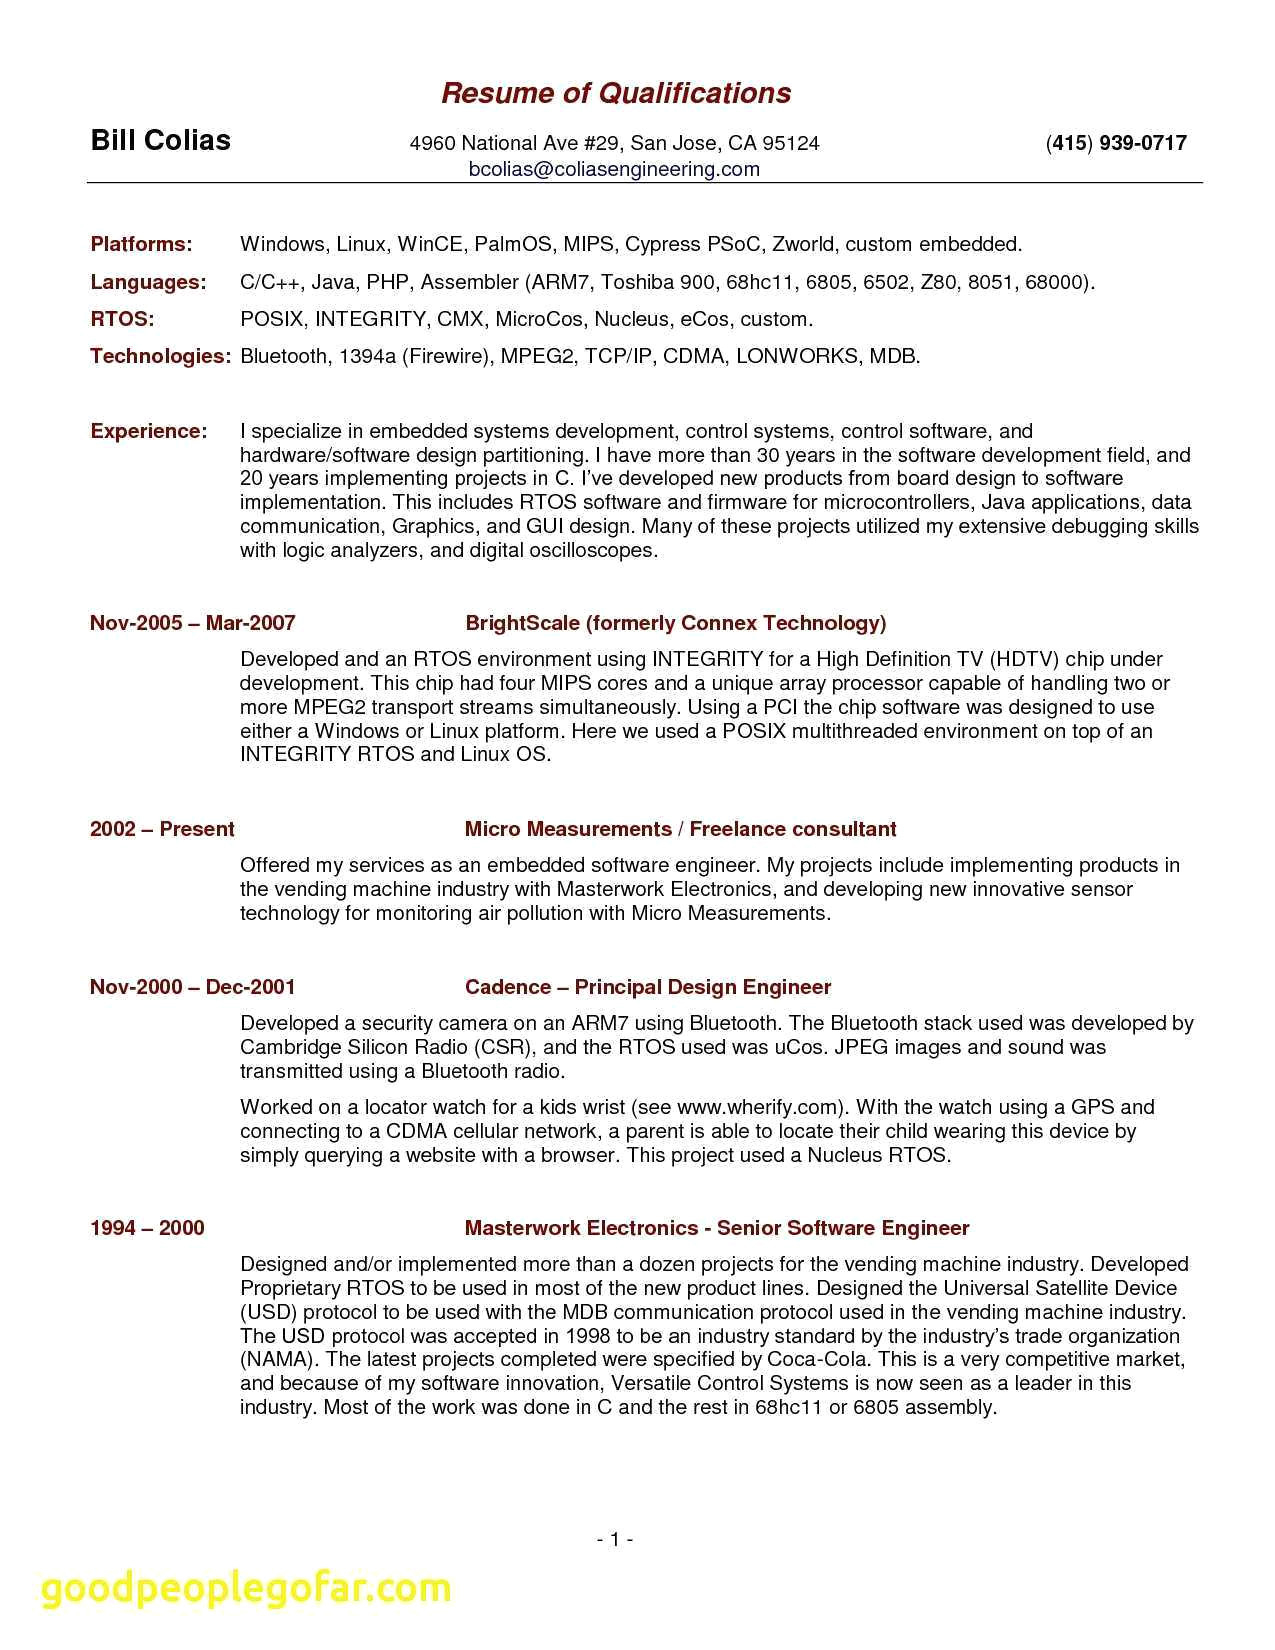 Good Skills to Put On A Resume - 40 Best Skills for Resumes